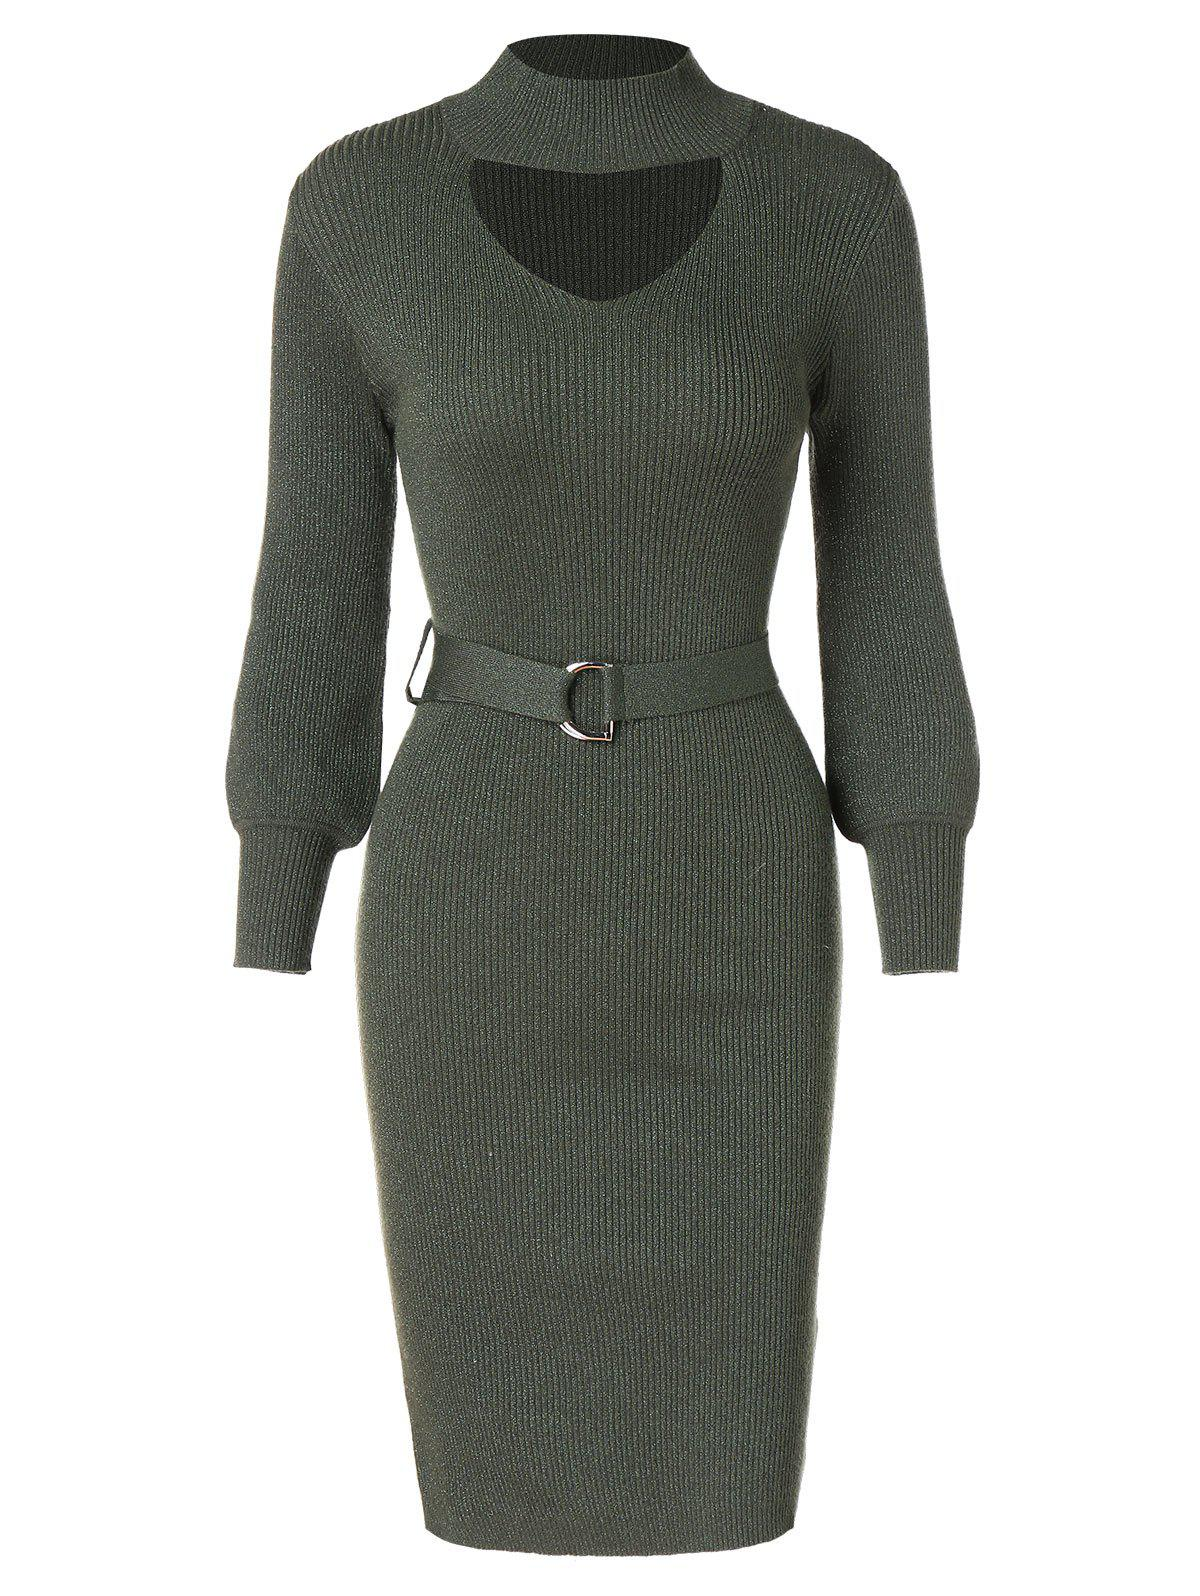 Sparkly Belted Bodycon Pencil Dress - ARMY GREEN L